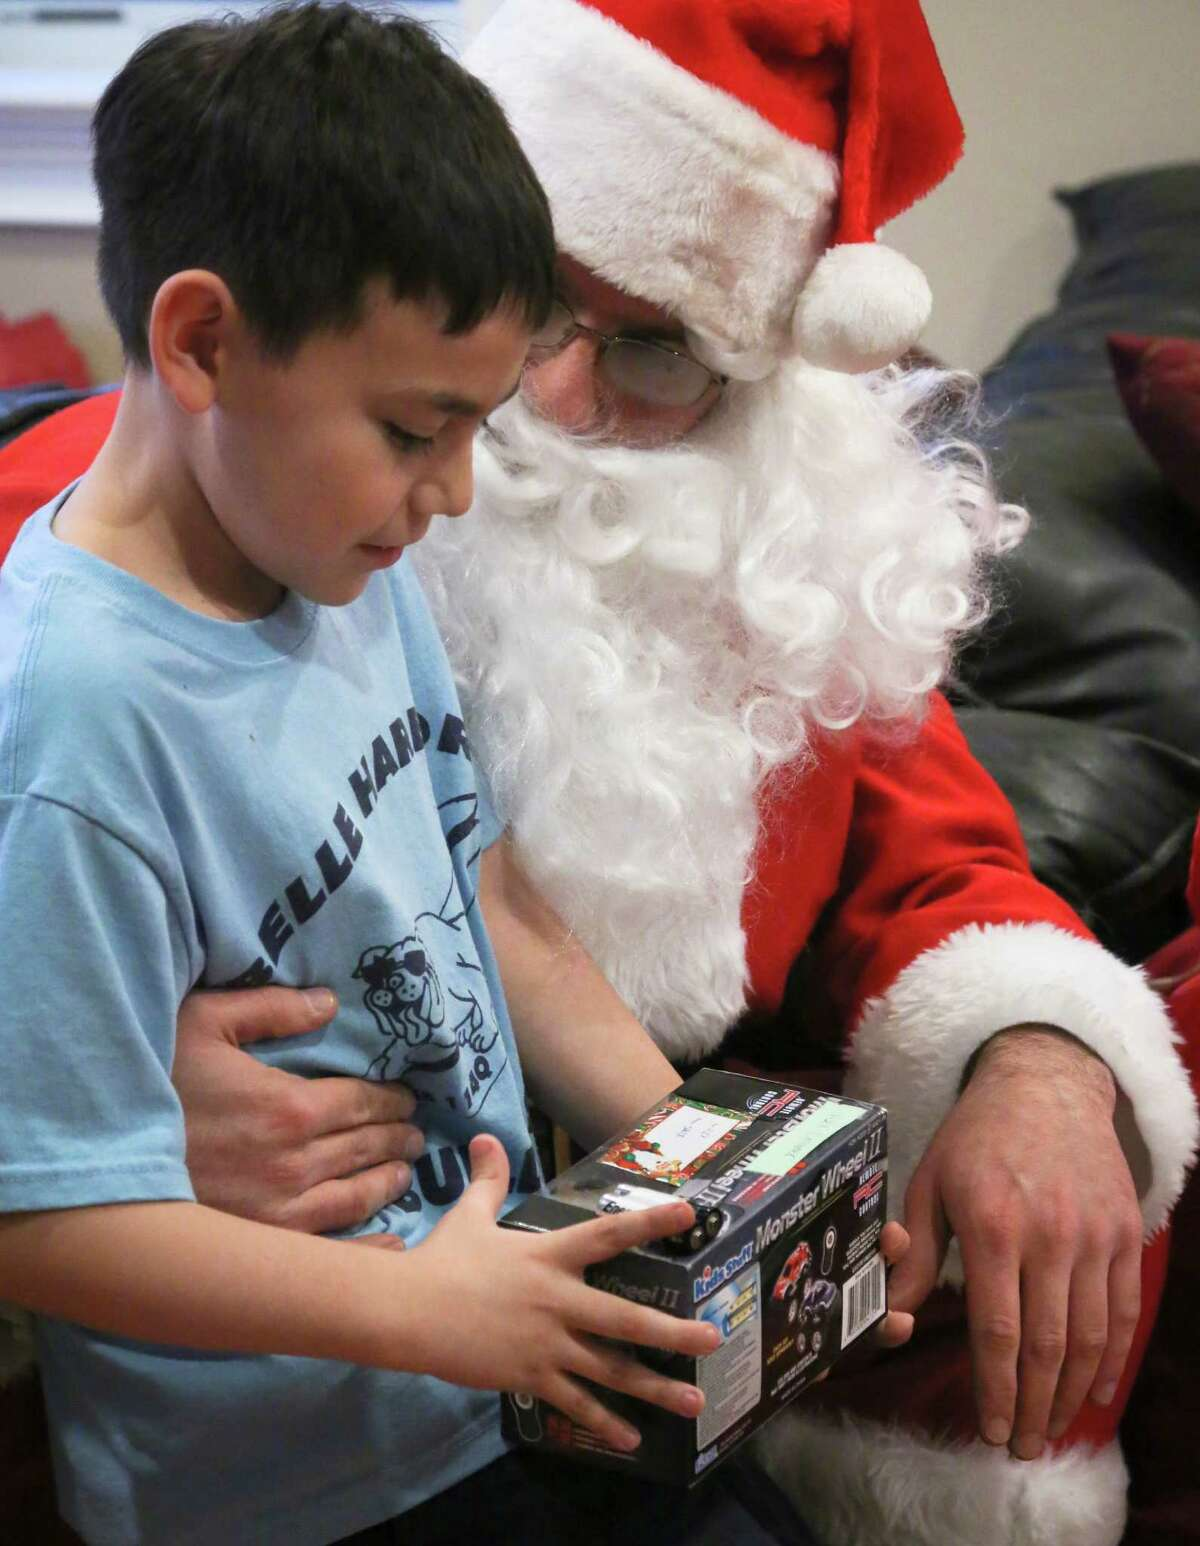 In this Tuesday, Dec. 18, 2012 photo, Alex Creamer, 9, receives a toy from Michael Sciaraffo, as Santa Claus, in the Belle Harbor neighborhood of the Queens borough of New York. Using Facebook, Sciaraffo started a charitable enterprise to collect and personally deliver toys to children affected by Superstorm Sandy, dressed as Santa Claus.